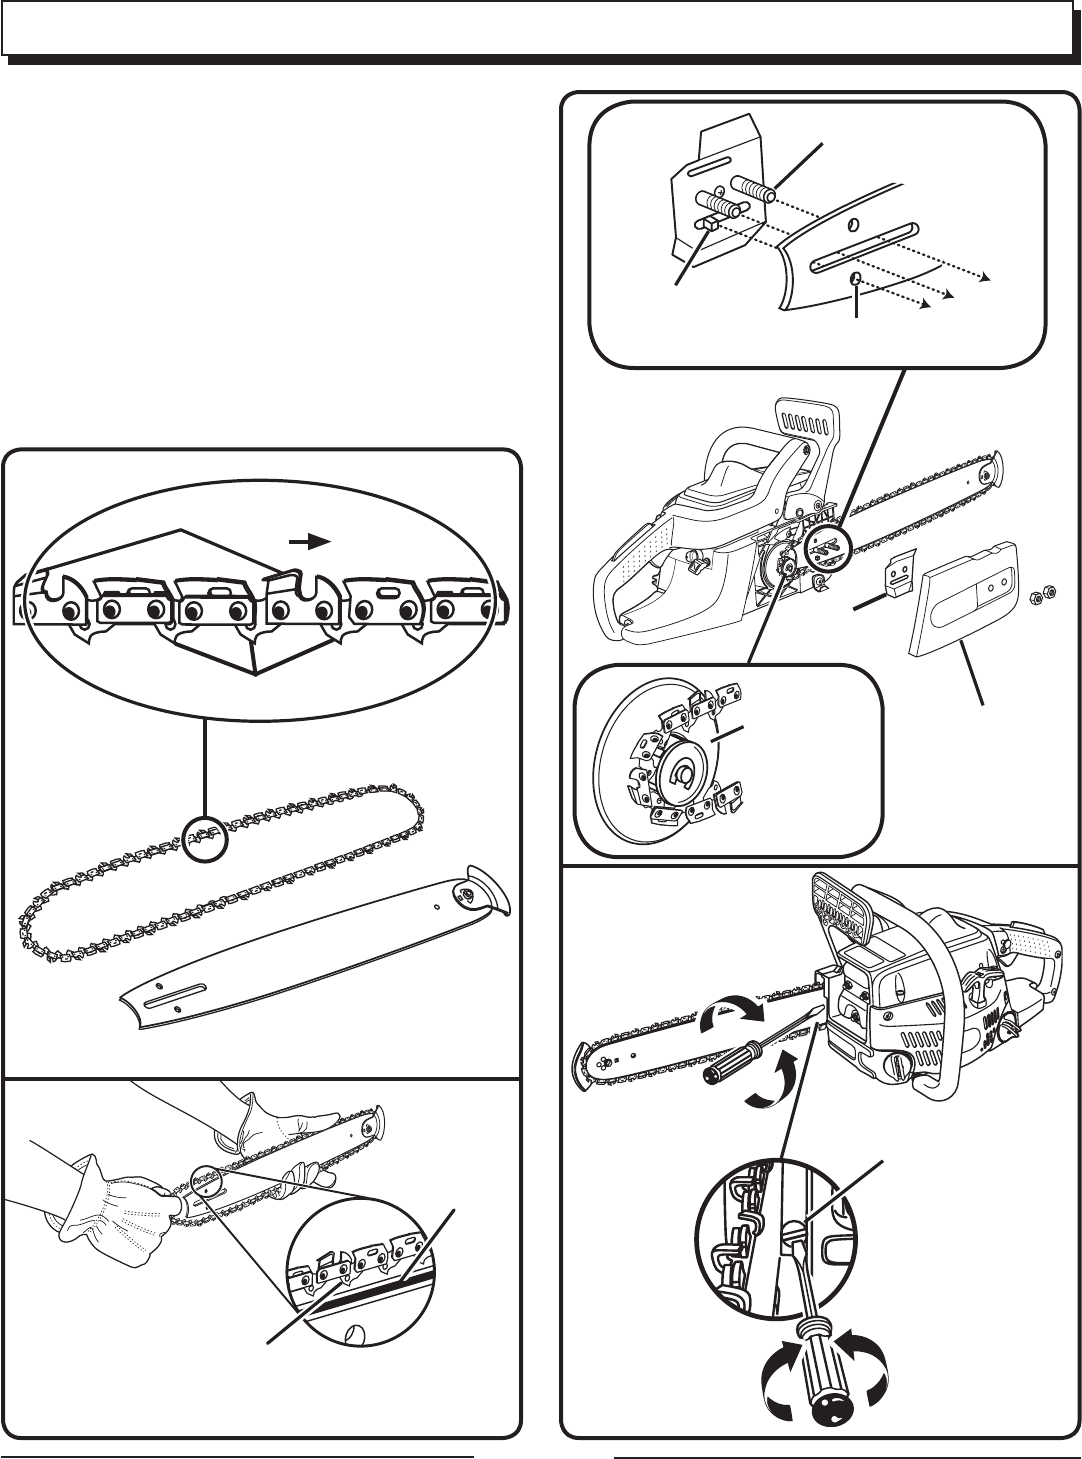 Page 23 of Homelite Chainsaw UT10516/16 IN. 33CC User